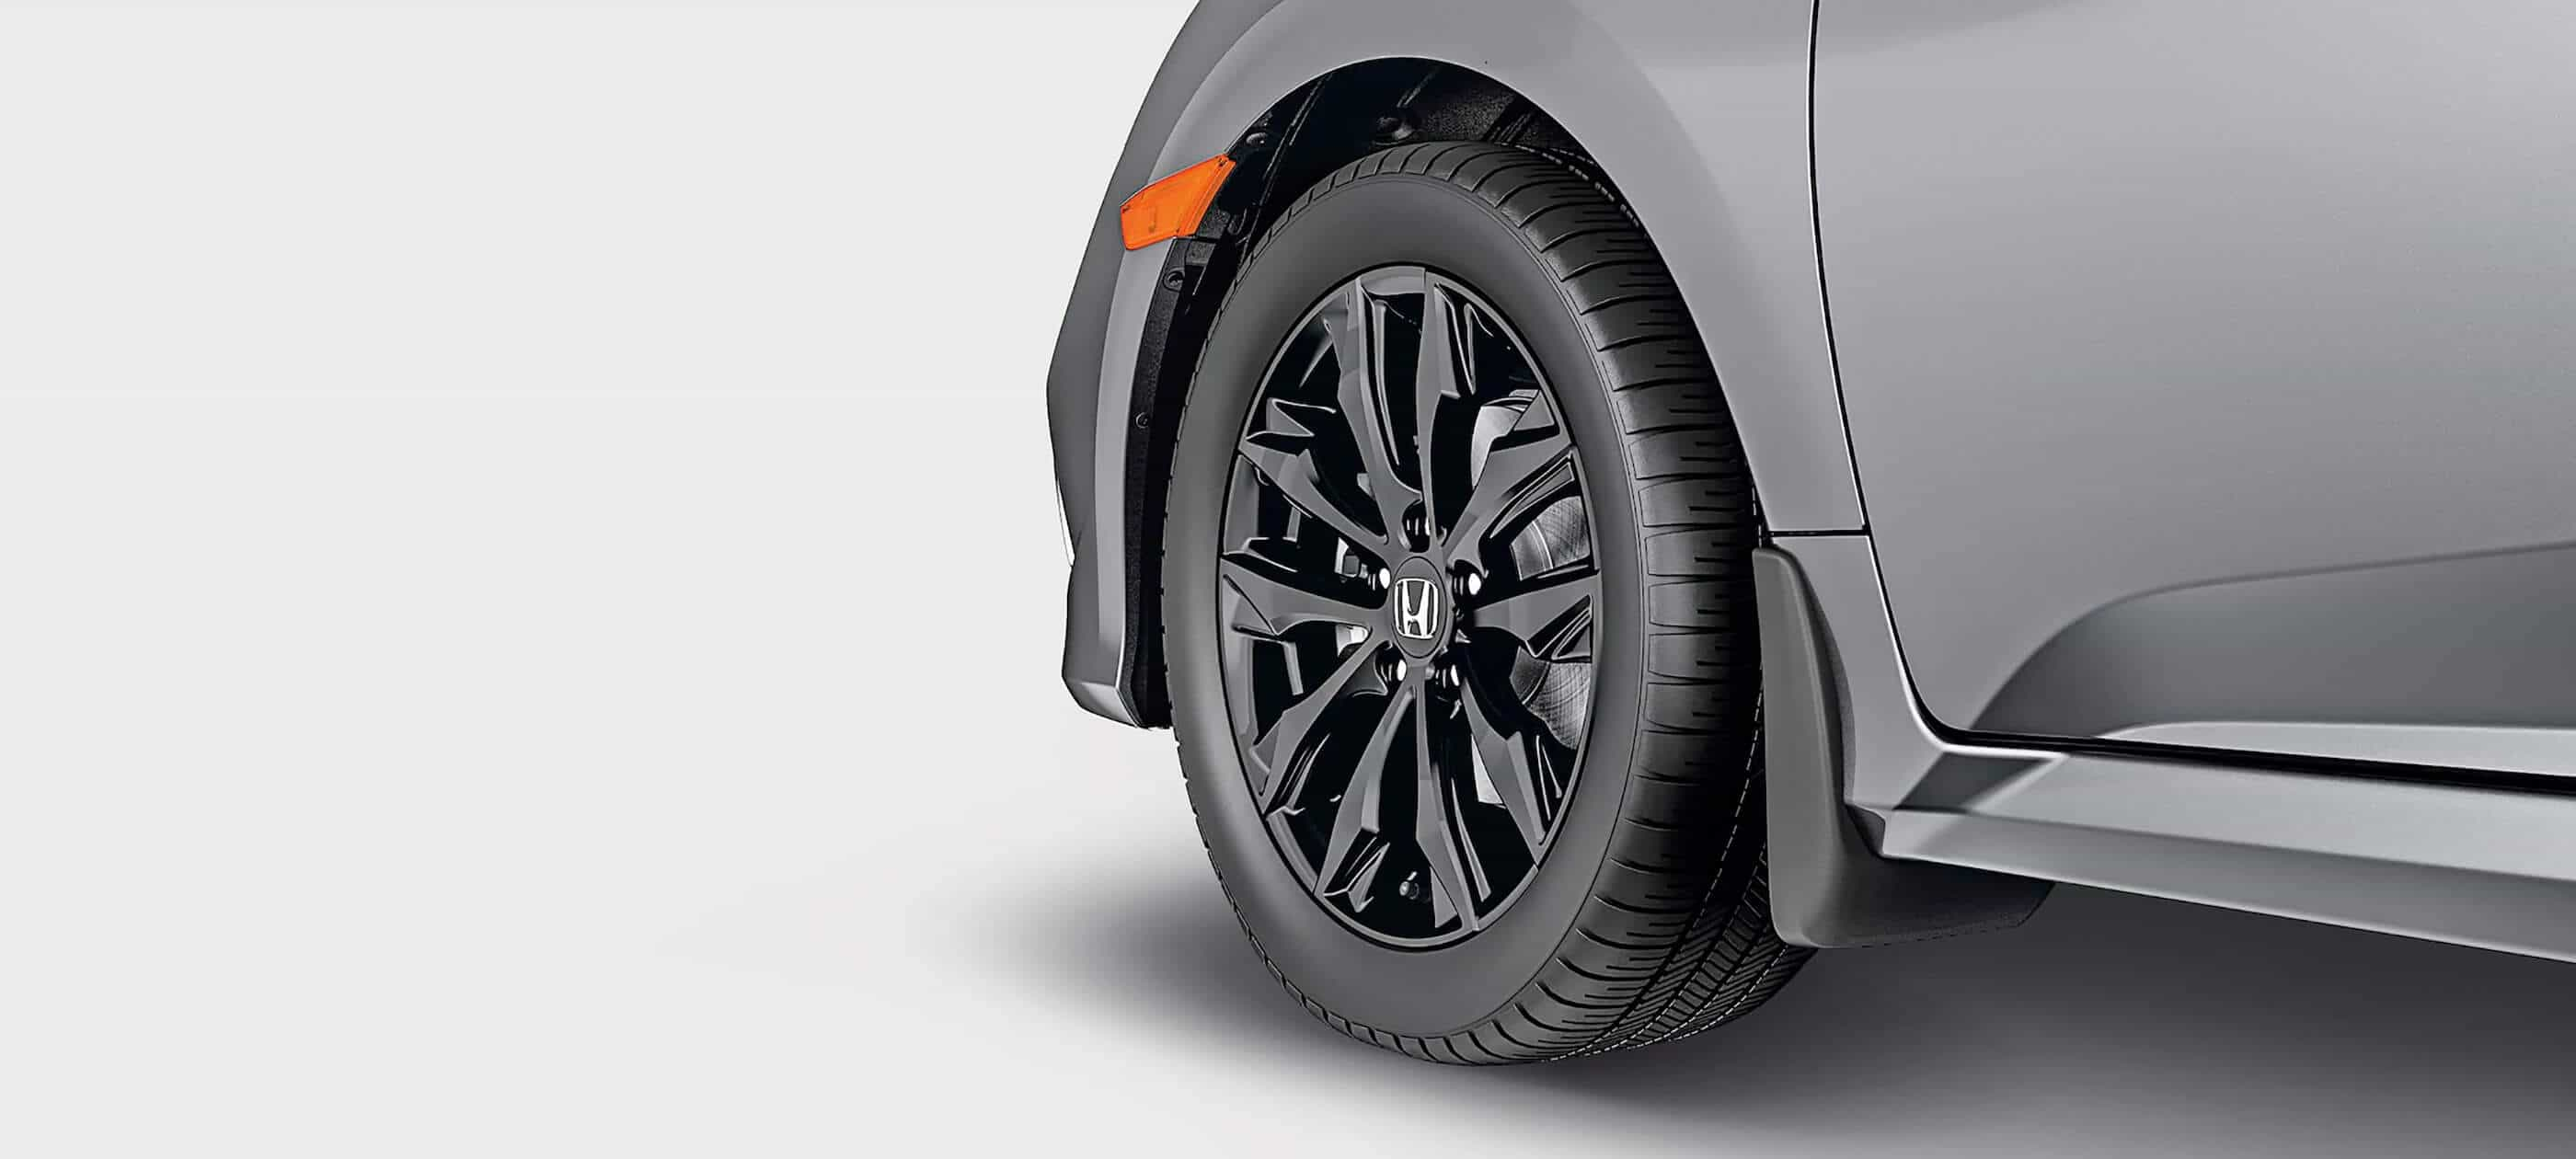 17-Inch Black Alloy Wheels